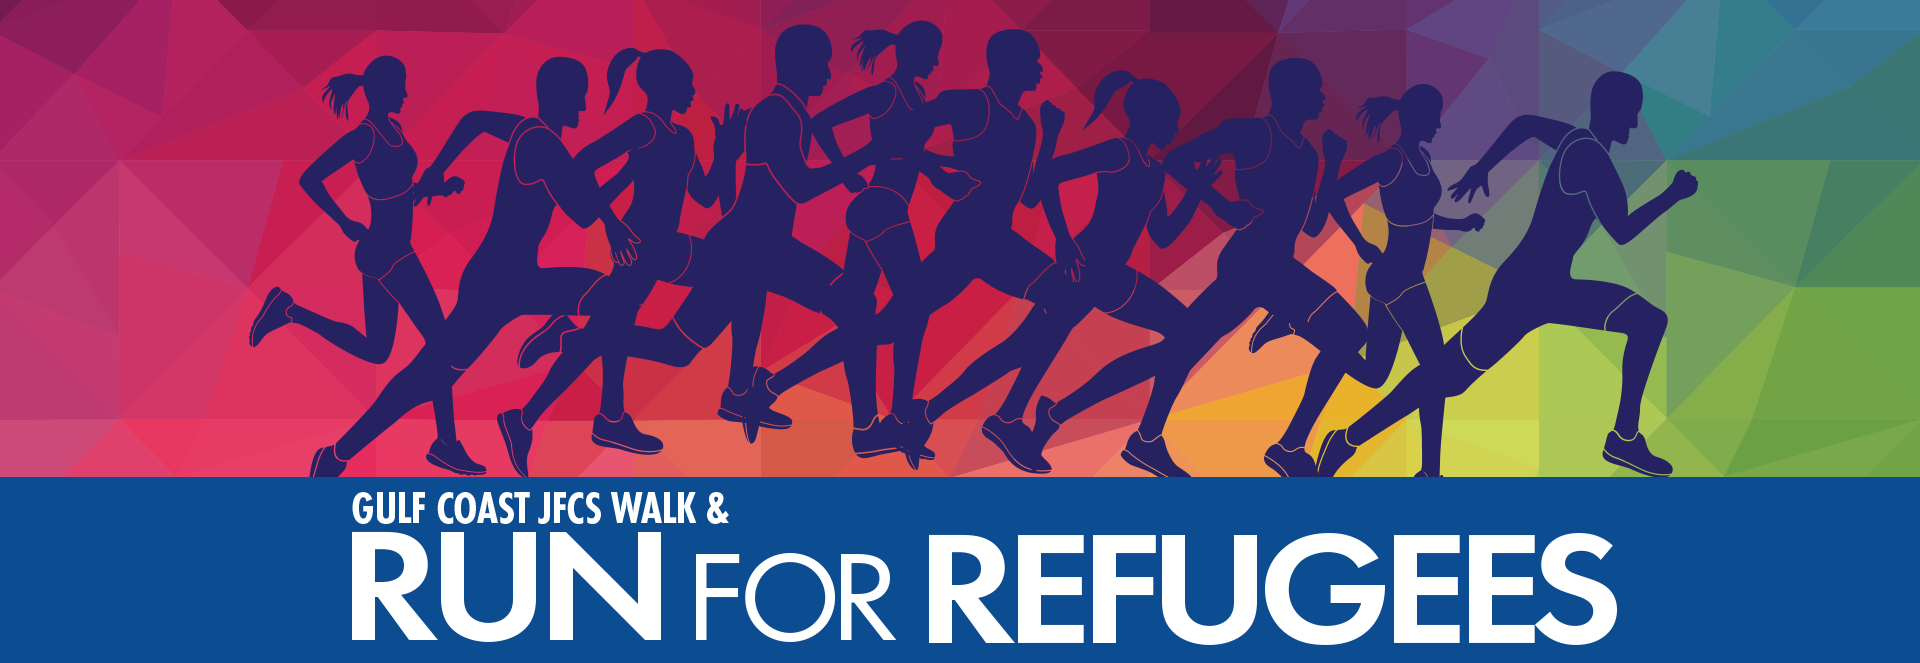 Run for Refugees banner